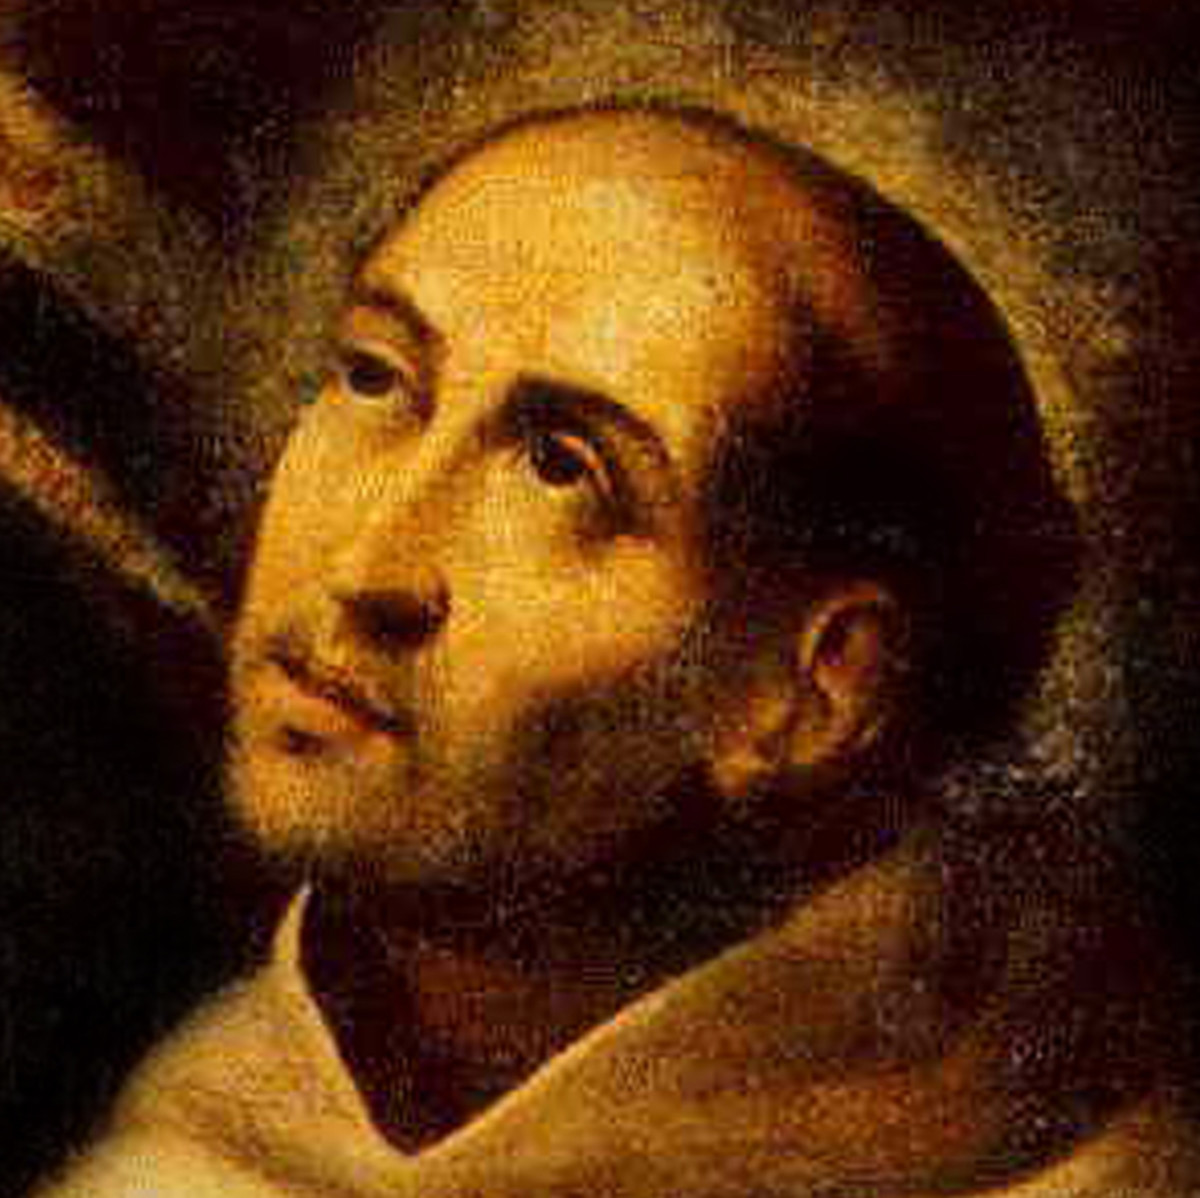 St. John of the Cross: A Poet in Prison